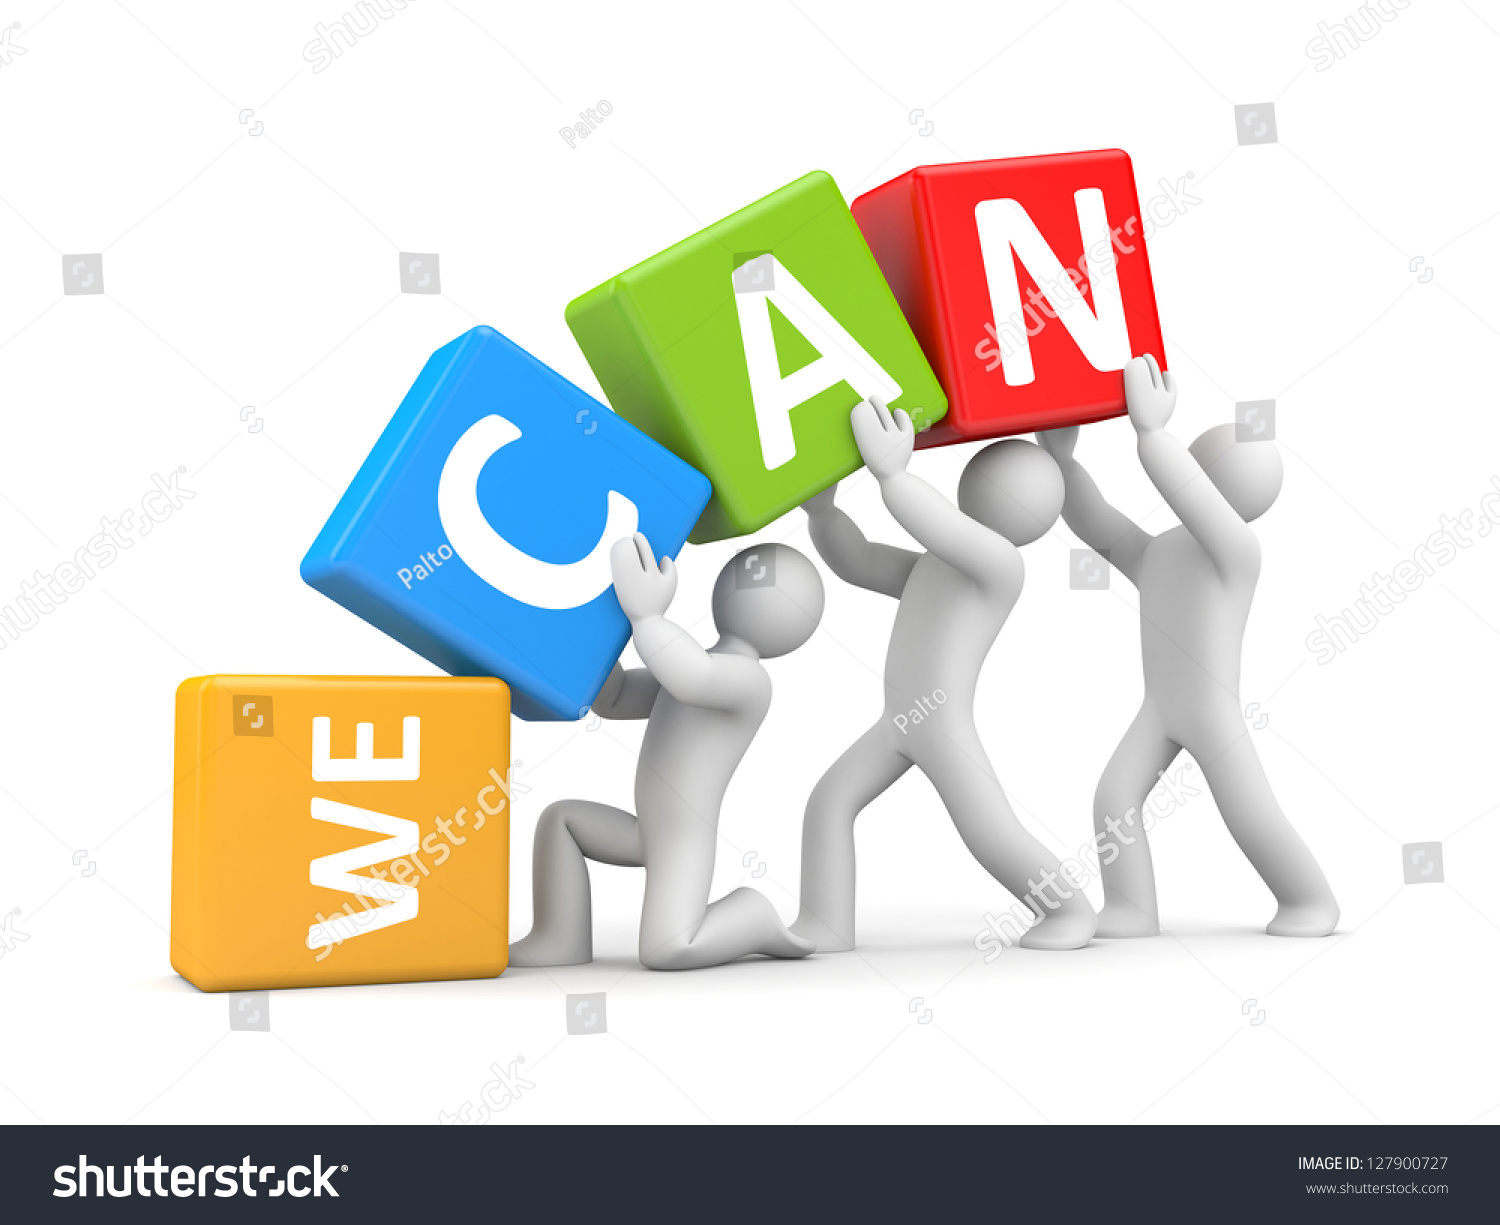 we canのイラスト素材 127900727 shutterstock